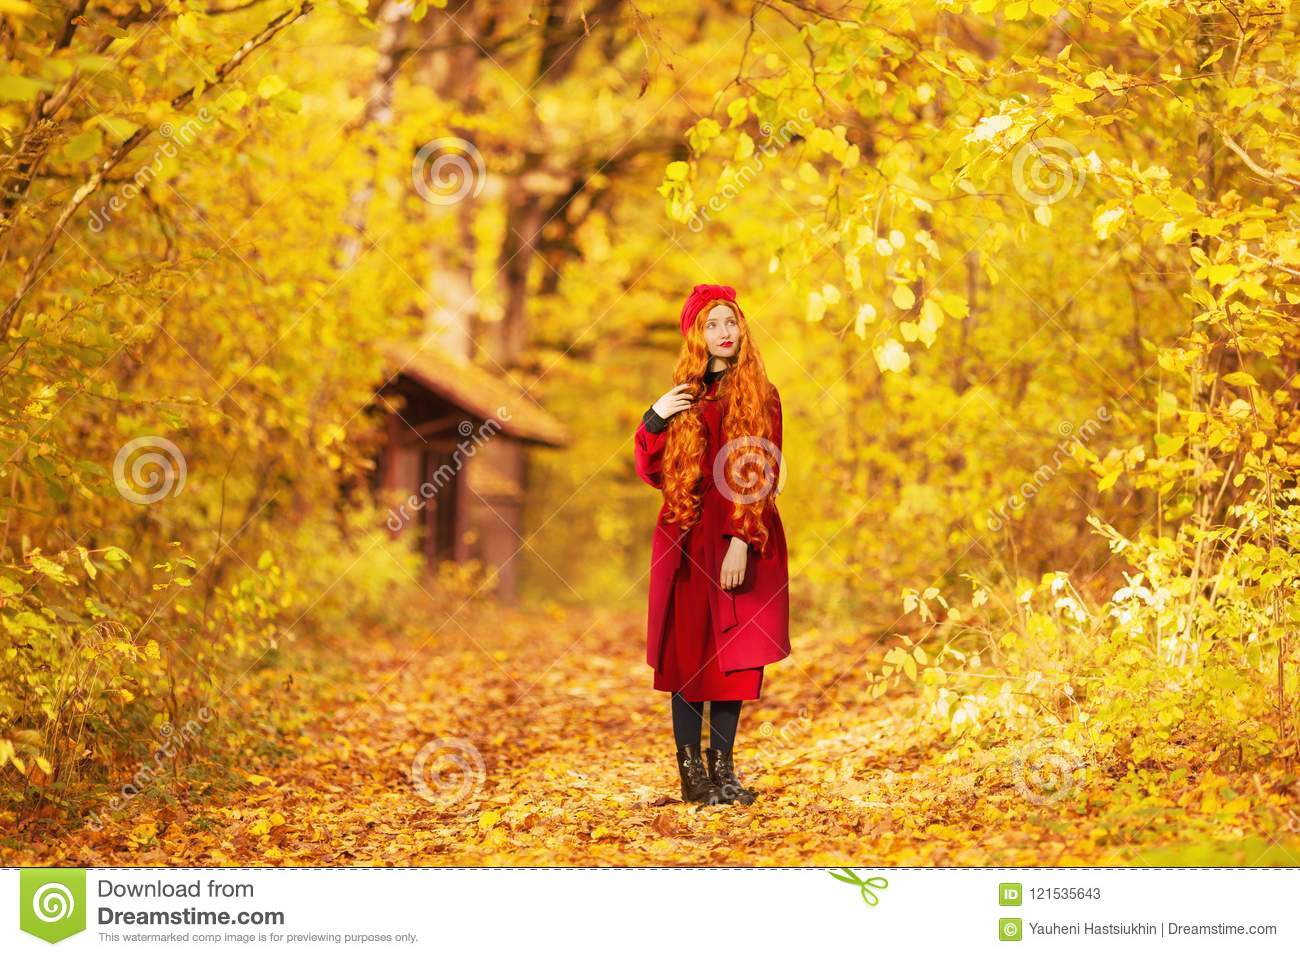 fabulous redhead woman with long curly hair in red coat on autumn background  girl on fabulous